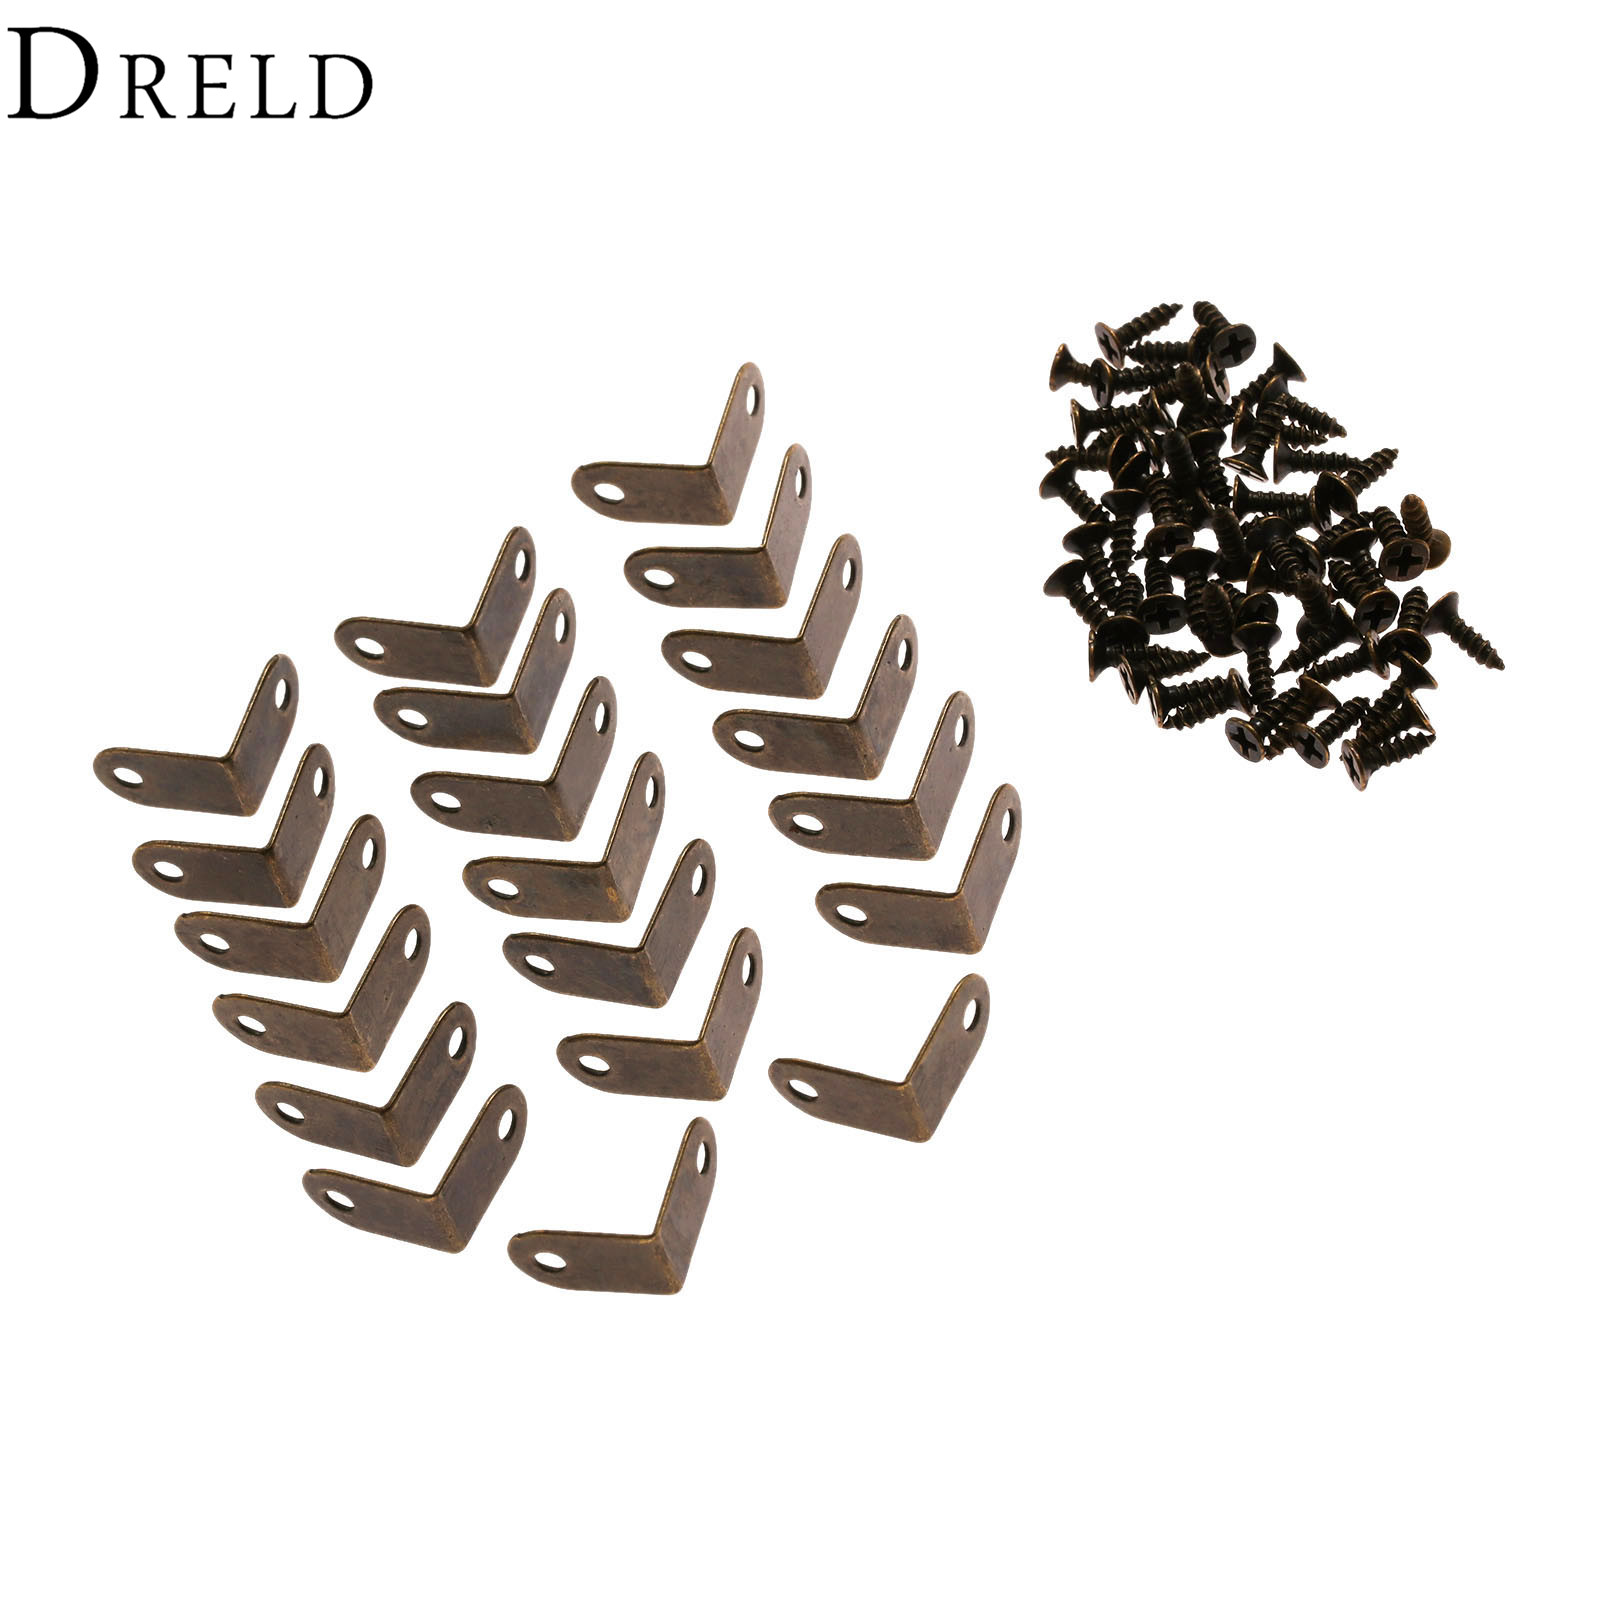 DRELD 20Pcs Iron Decorative Antique Jewelry Wine Gift Box Wooden Case Corner Protector Guard Bronze Decorate Your Desk 15*9mm